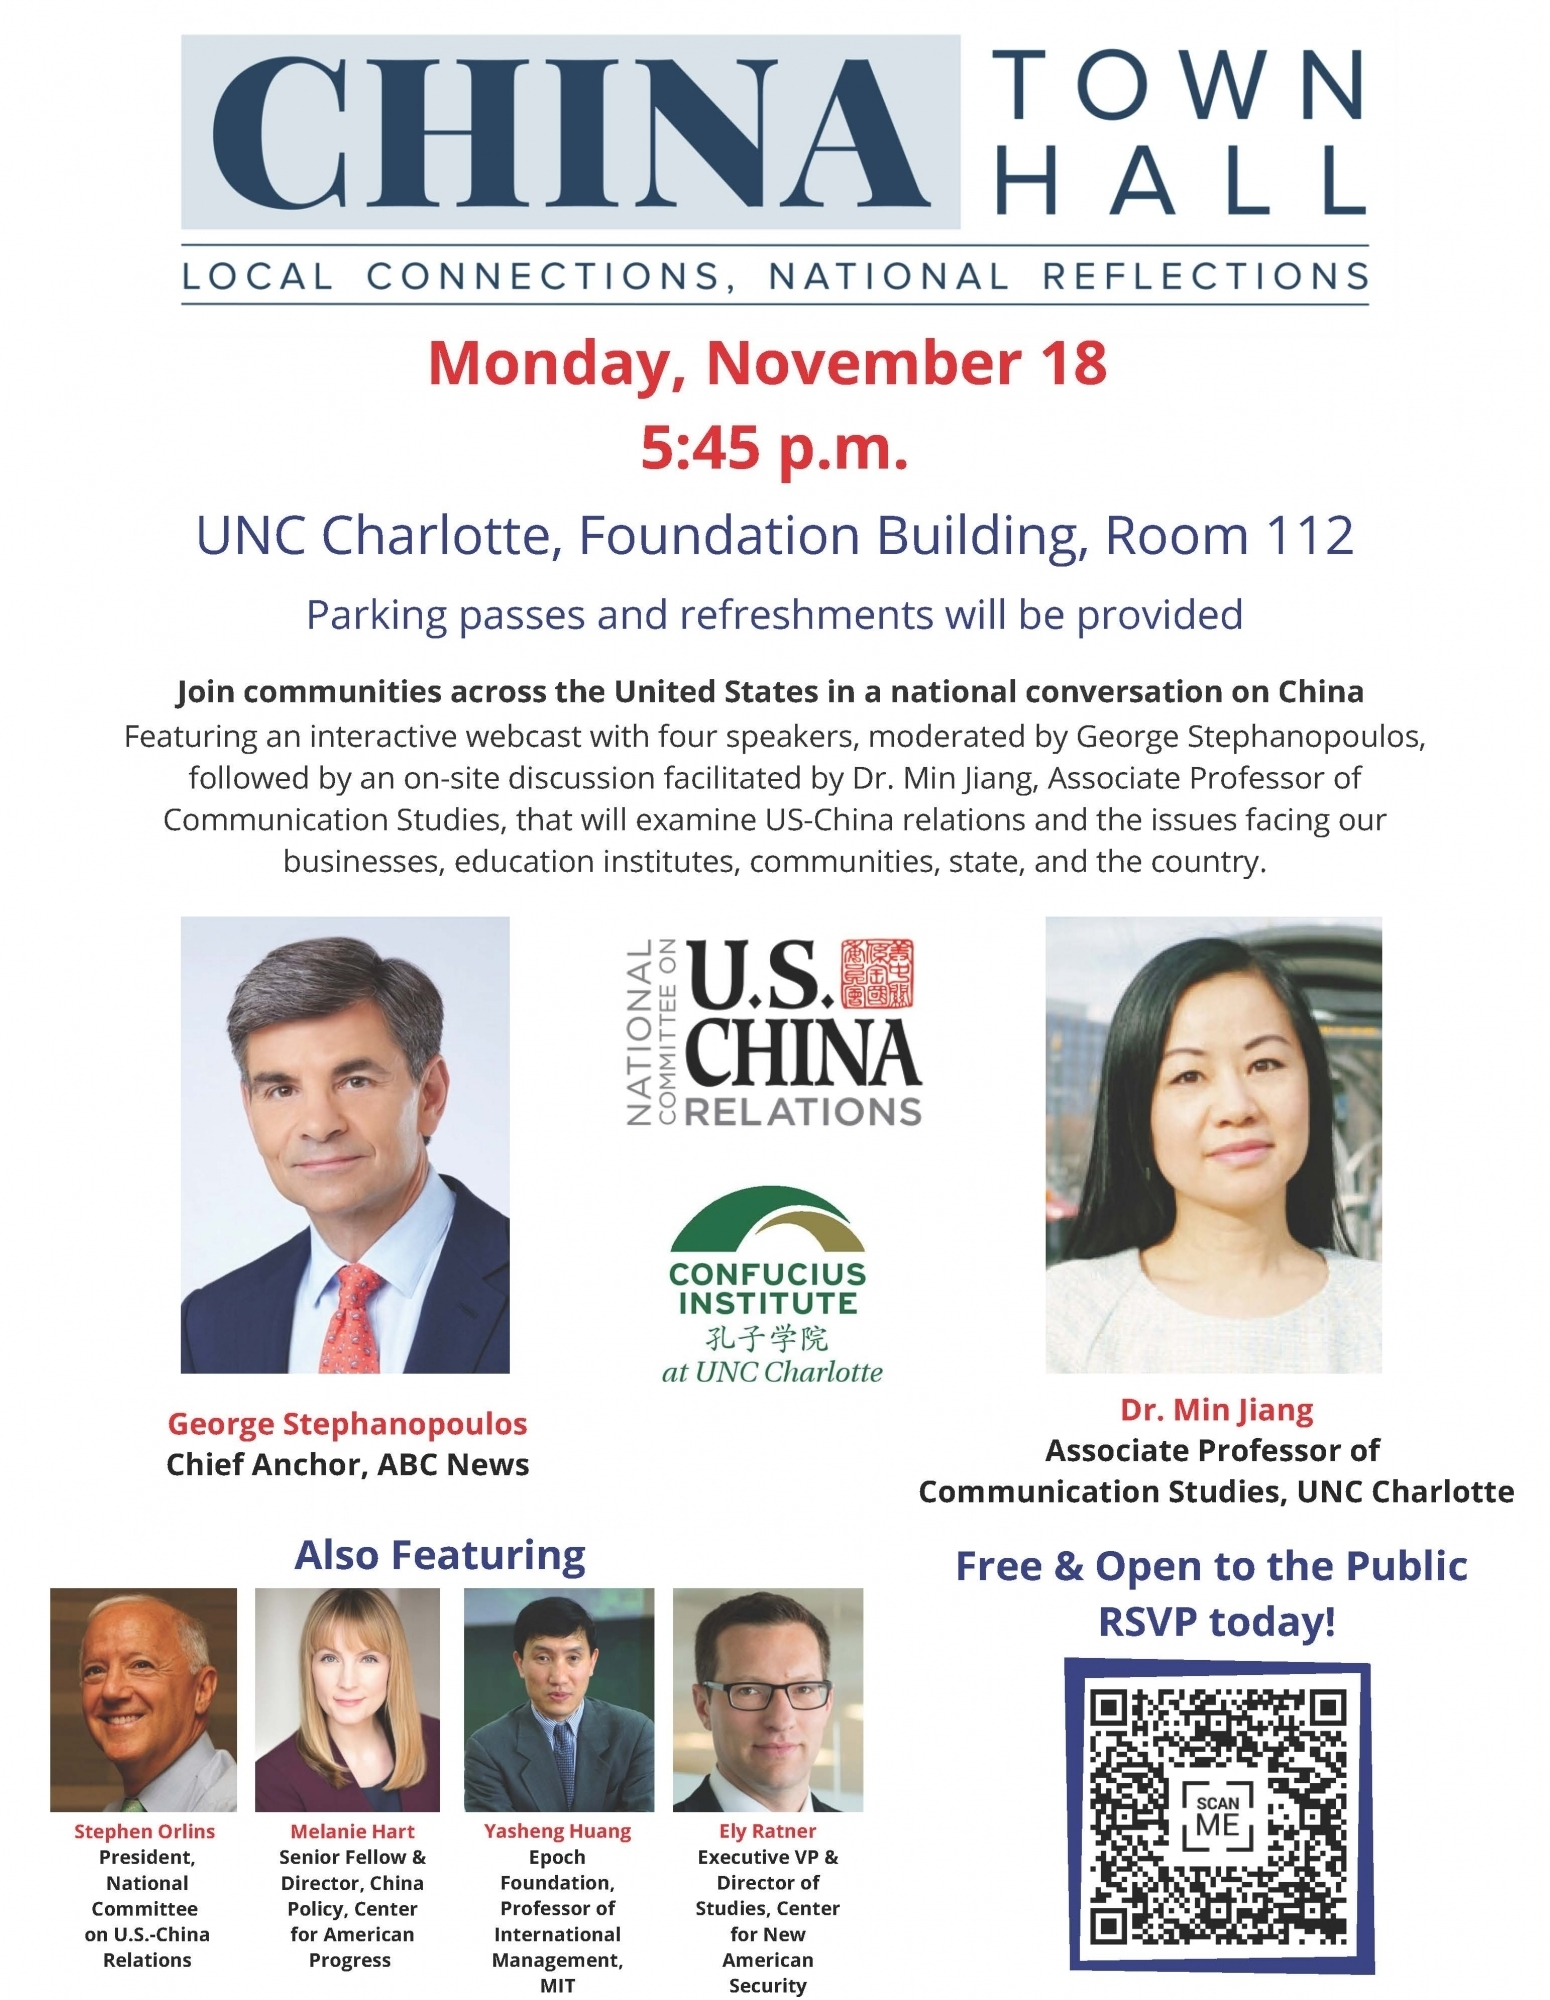 China Town Hall Meeting | Office Of International Programs